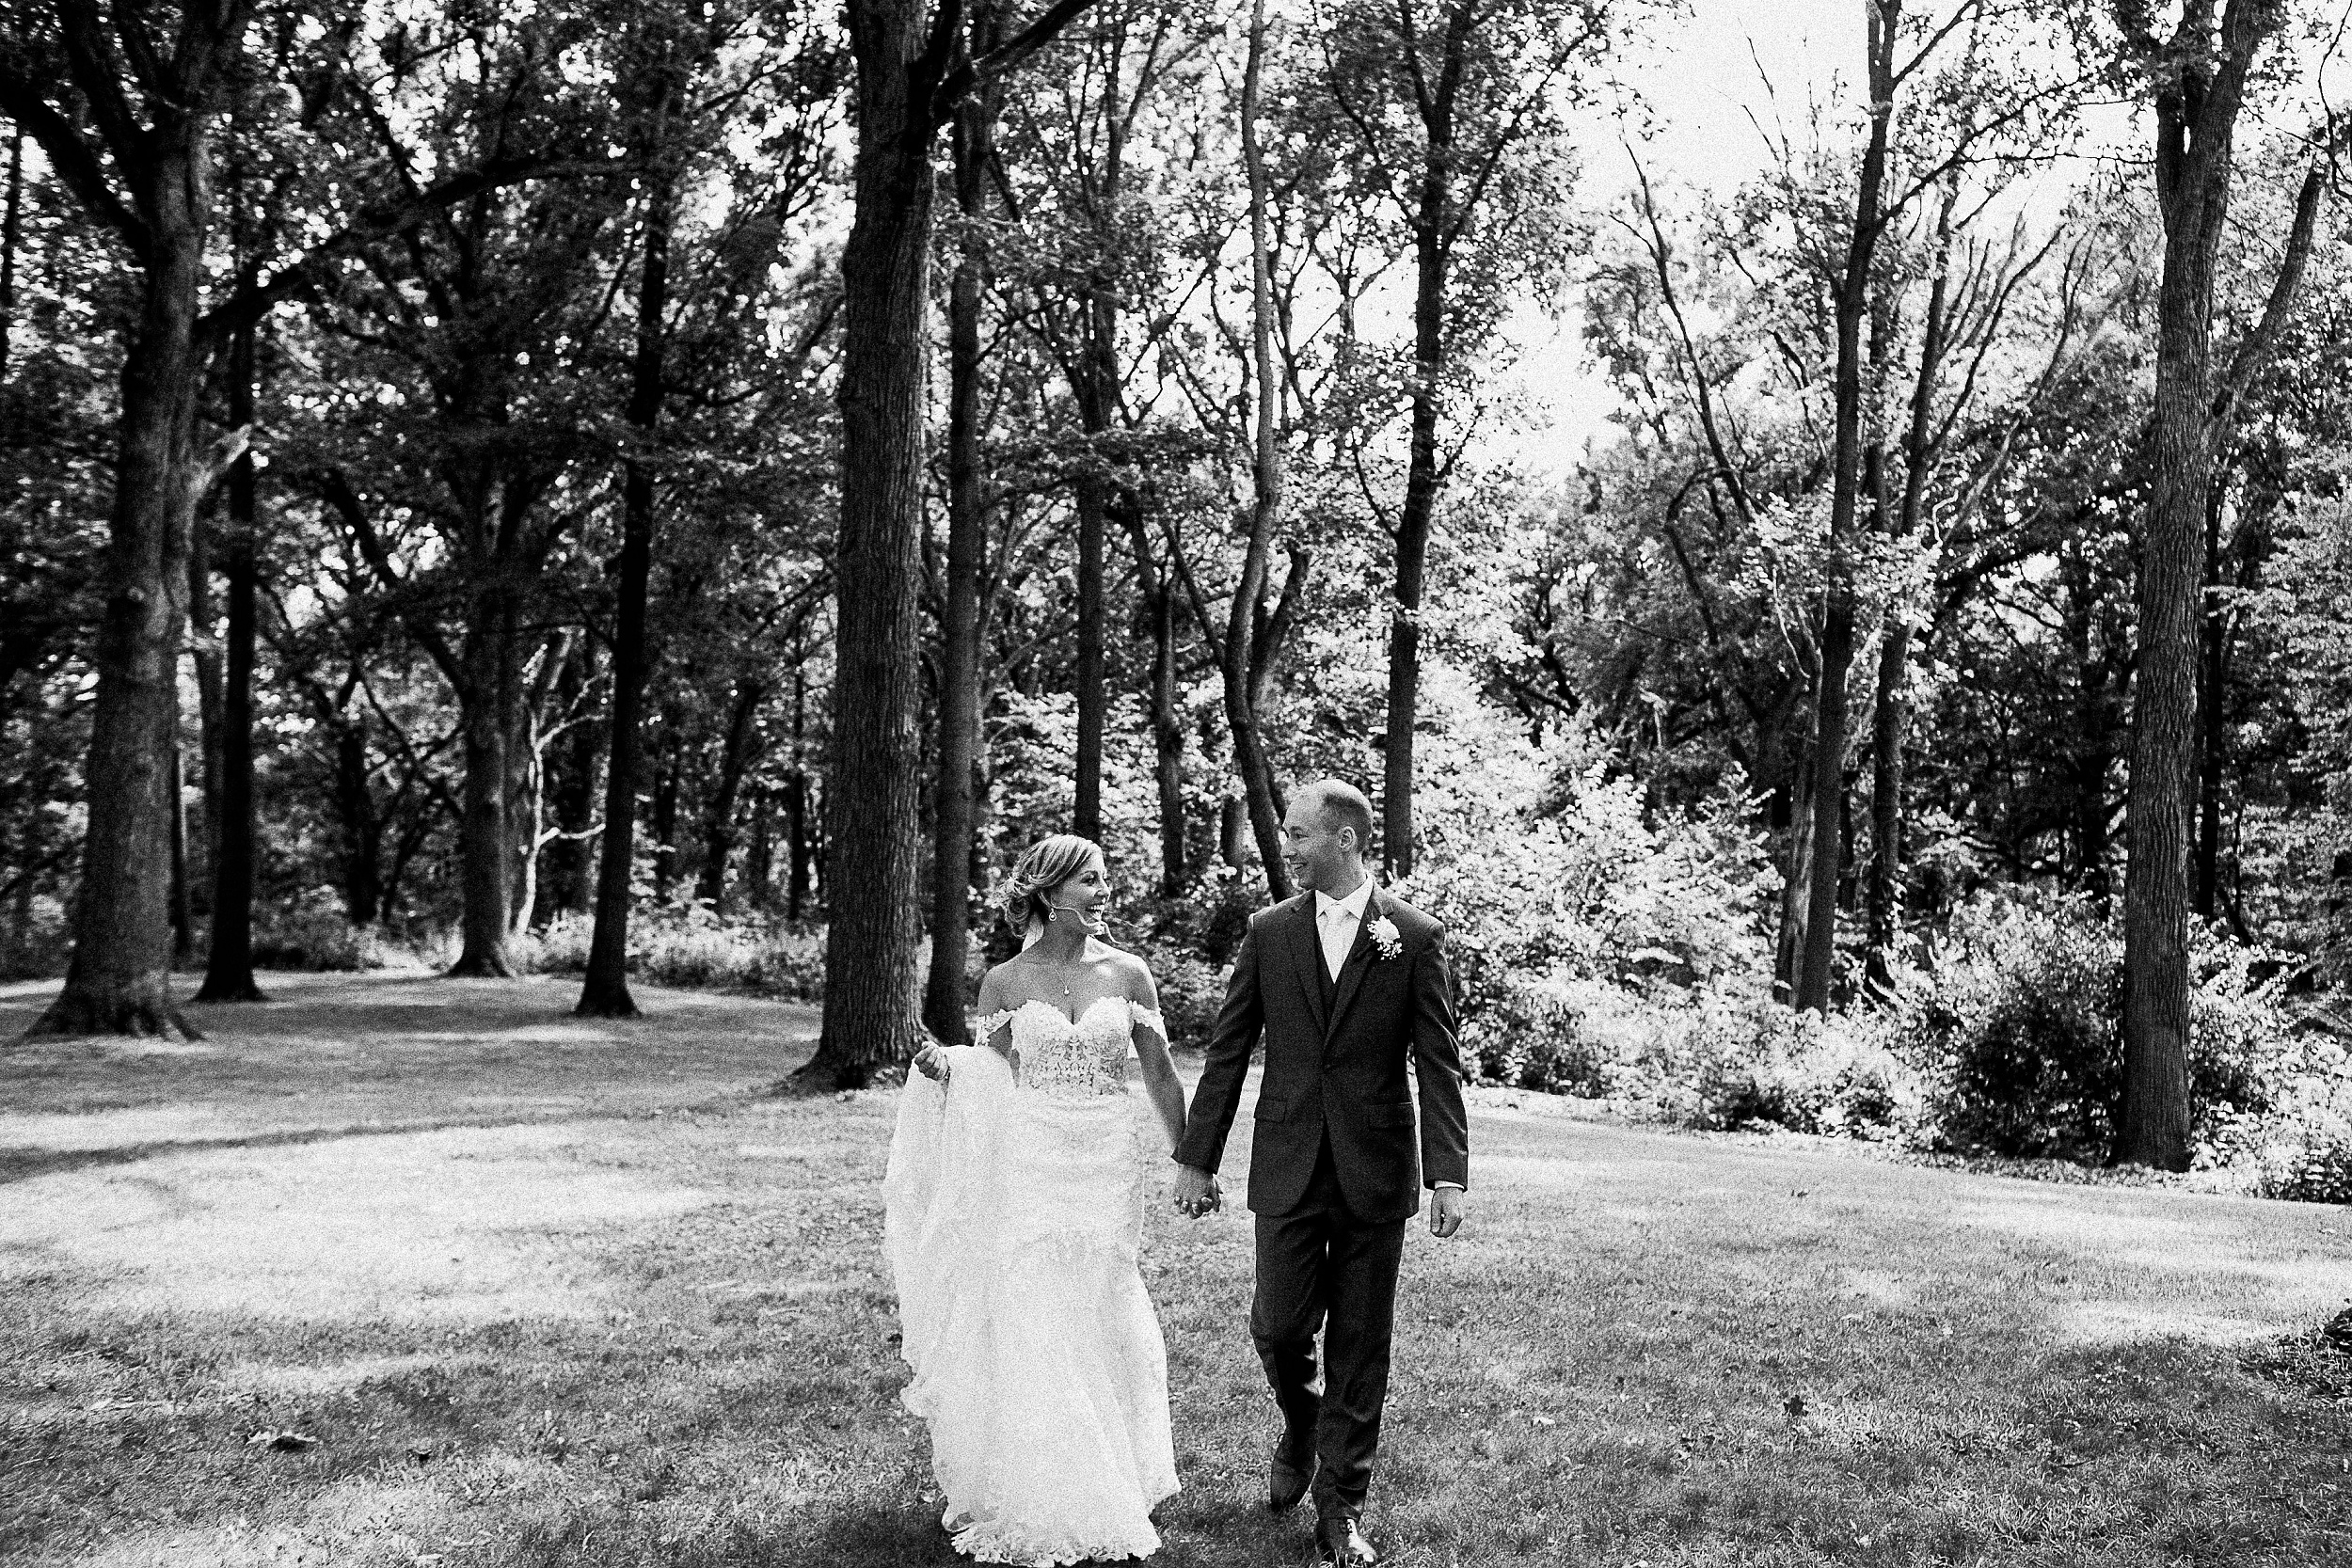 monte-bello-estates-lemont-il-wedding-photography_071.jpg